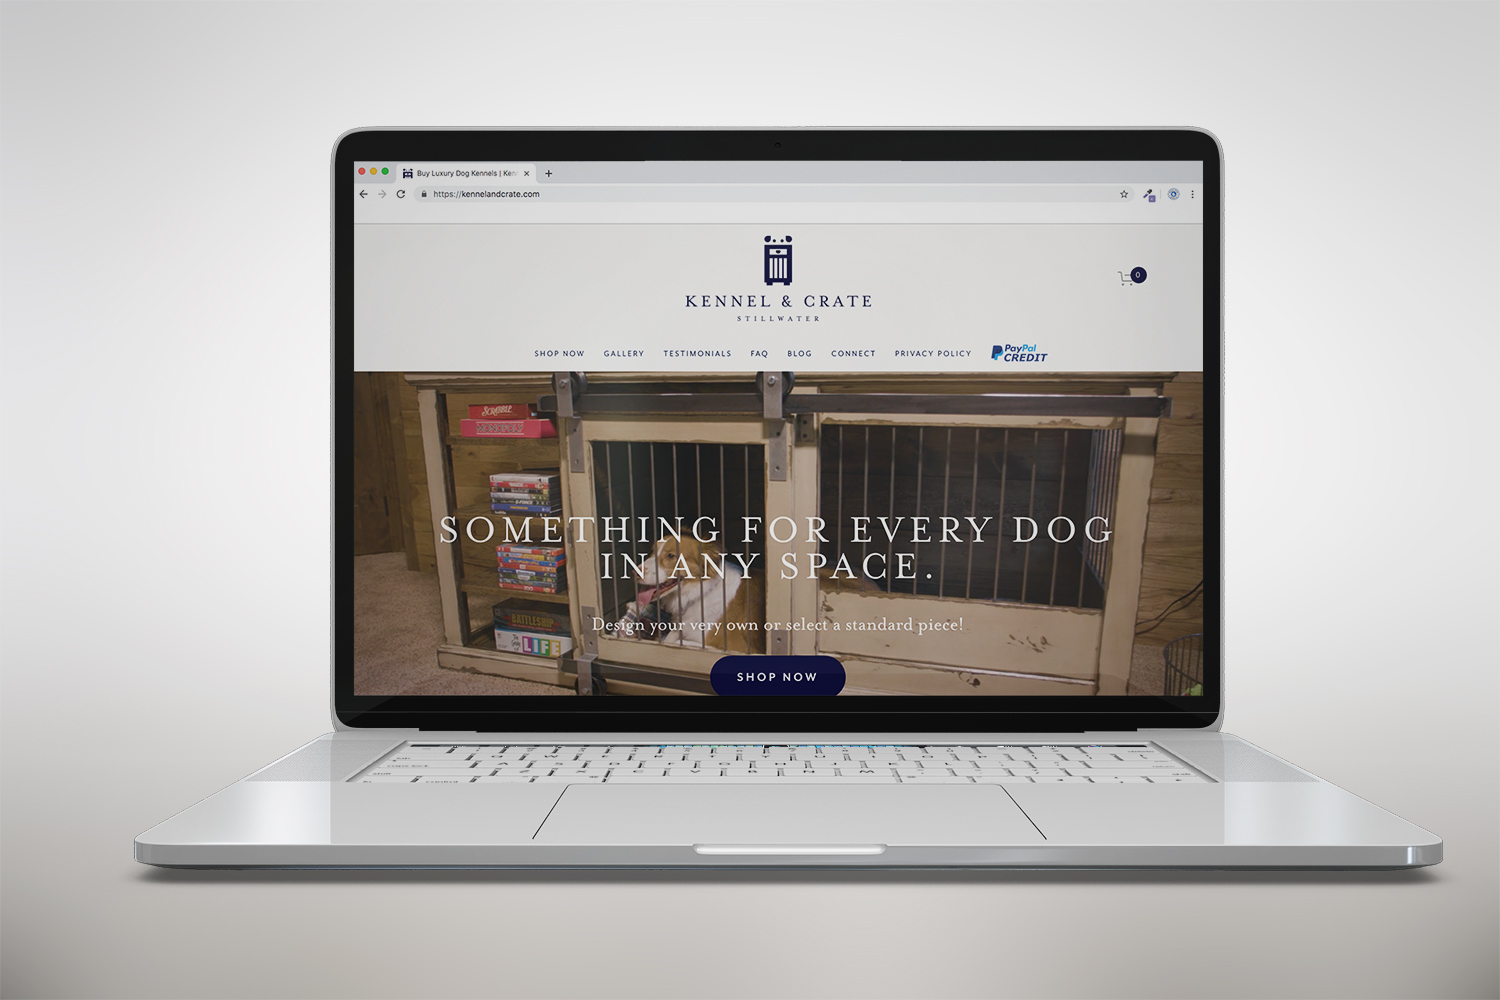 Kennel & Crate Website on a Laptop